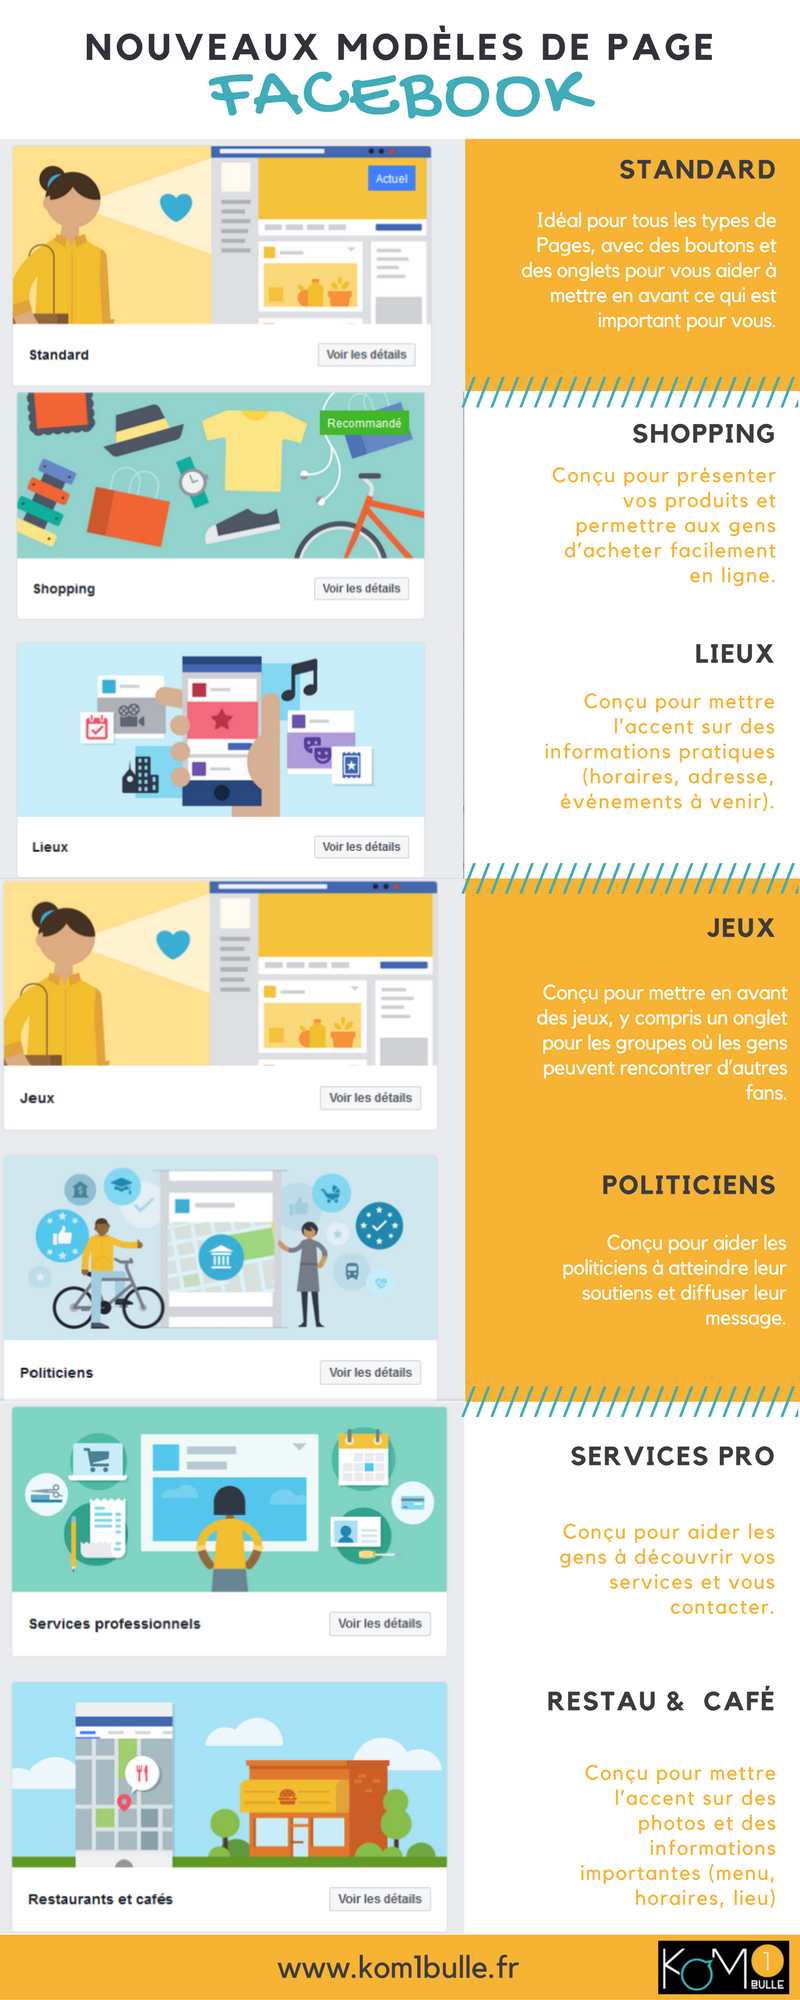 modele_page_facebook_infographie-community-management-marseille